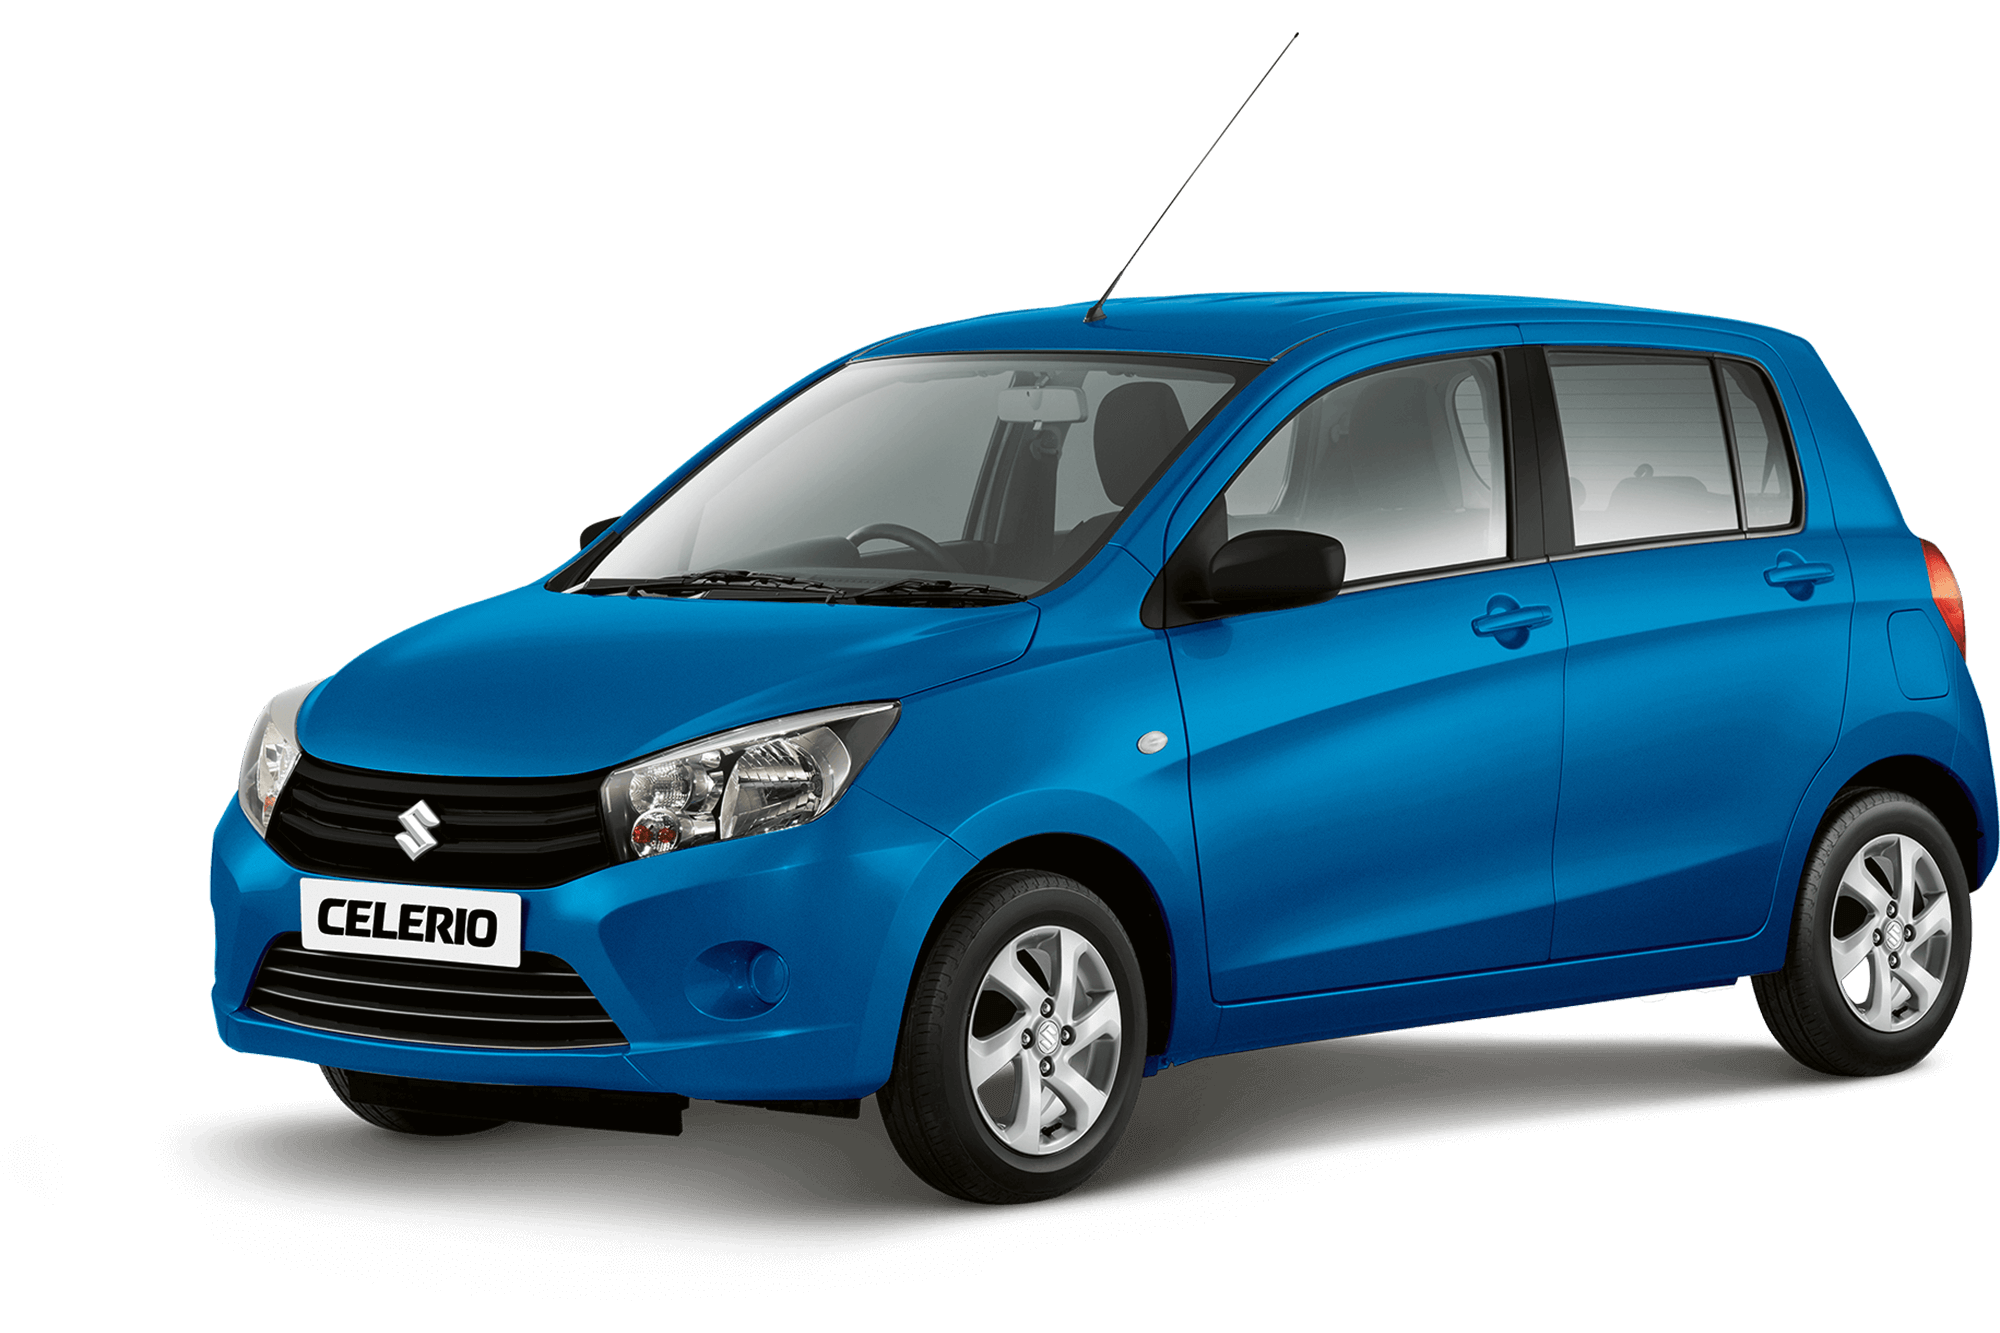 suzuki celerio sz3 specs price suzuki cars uk. Black Bedroom Furniture Sets. Home Design Ideas